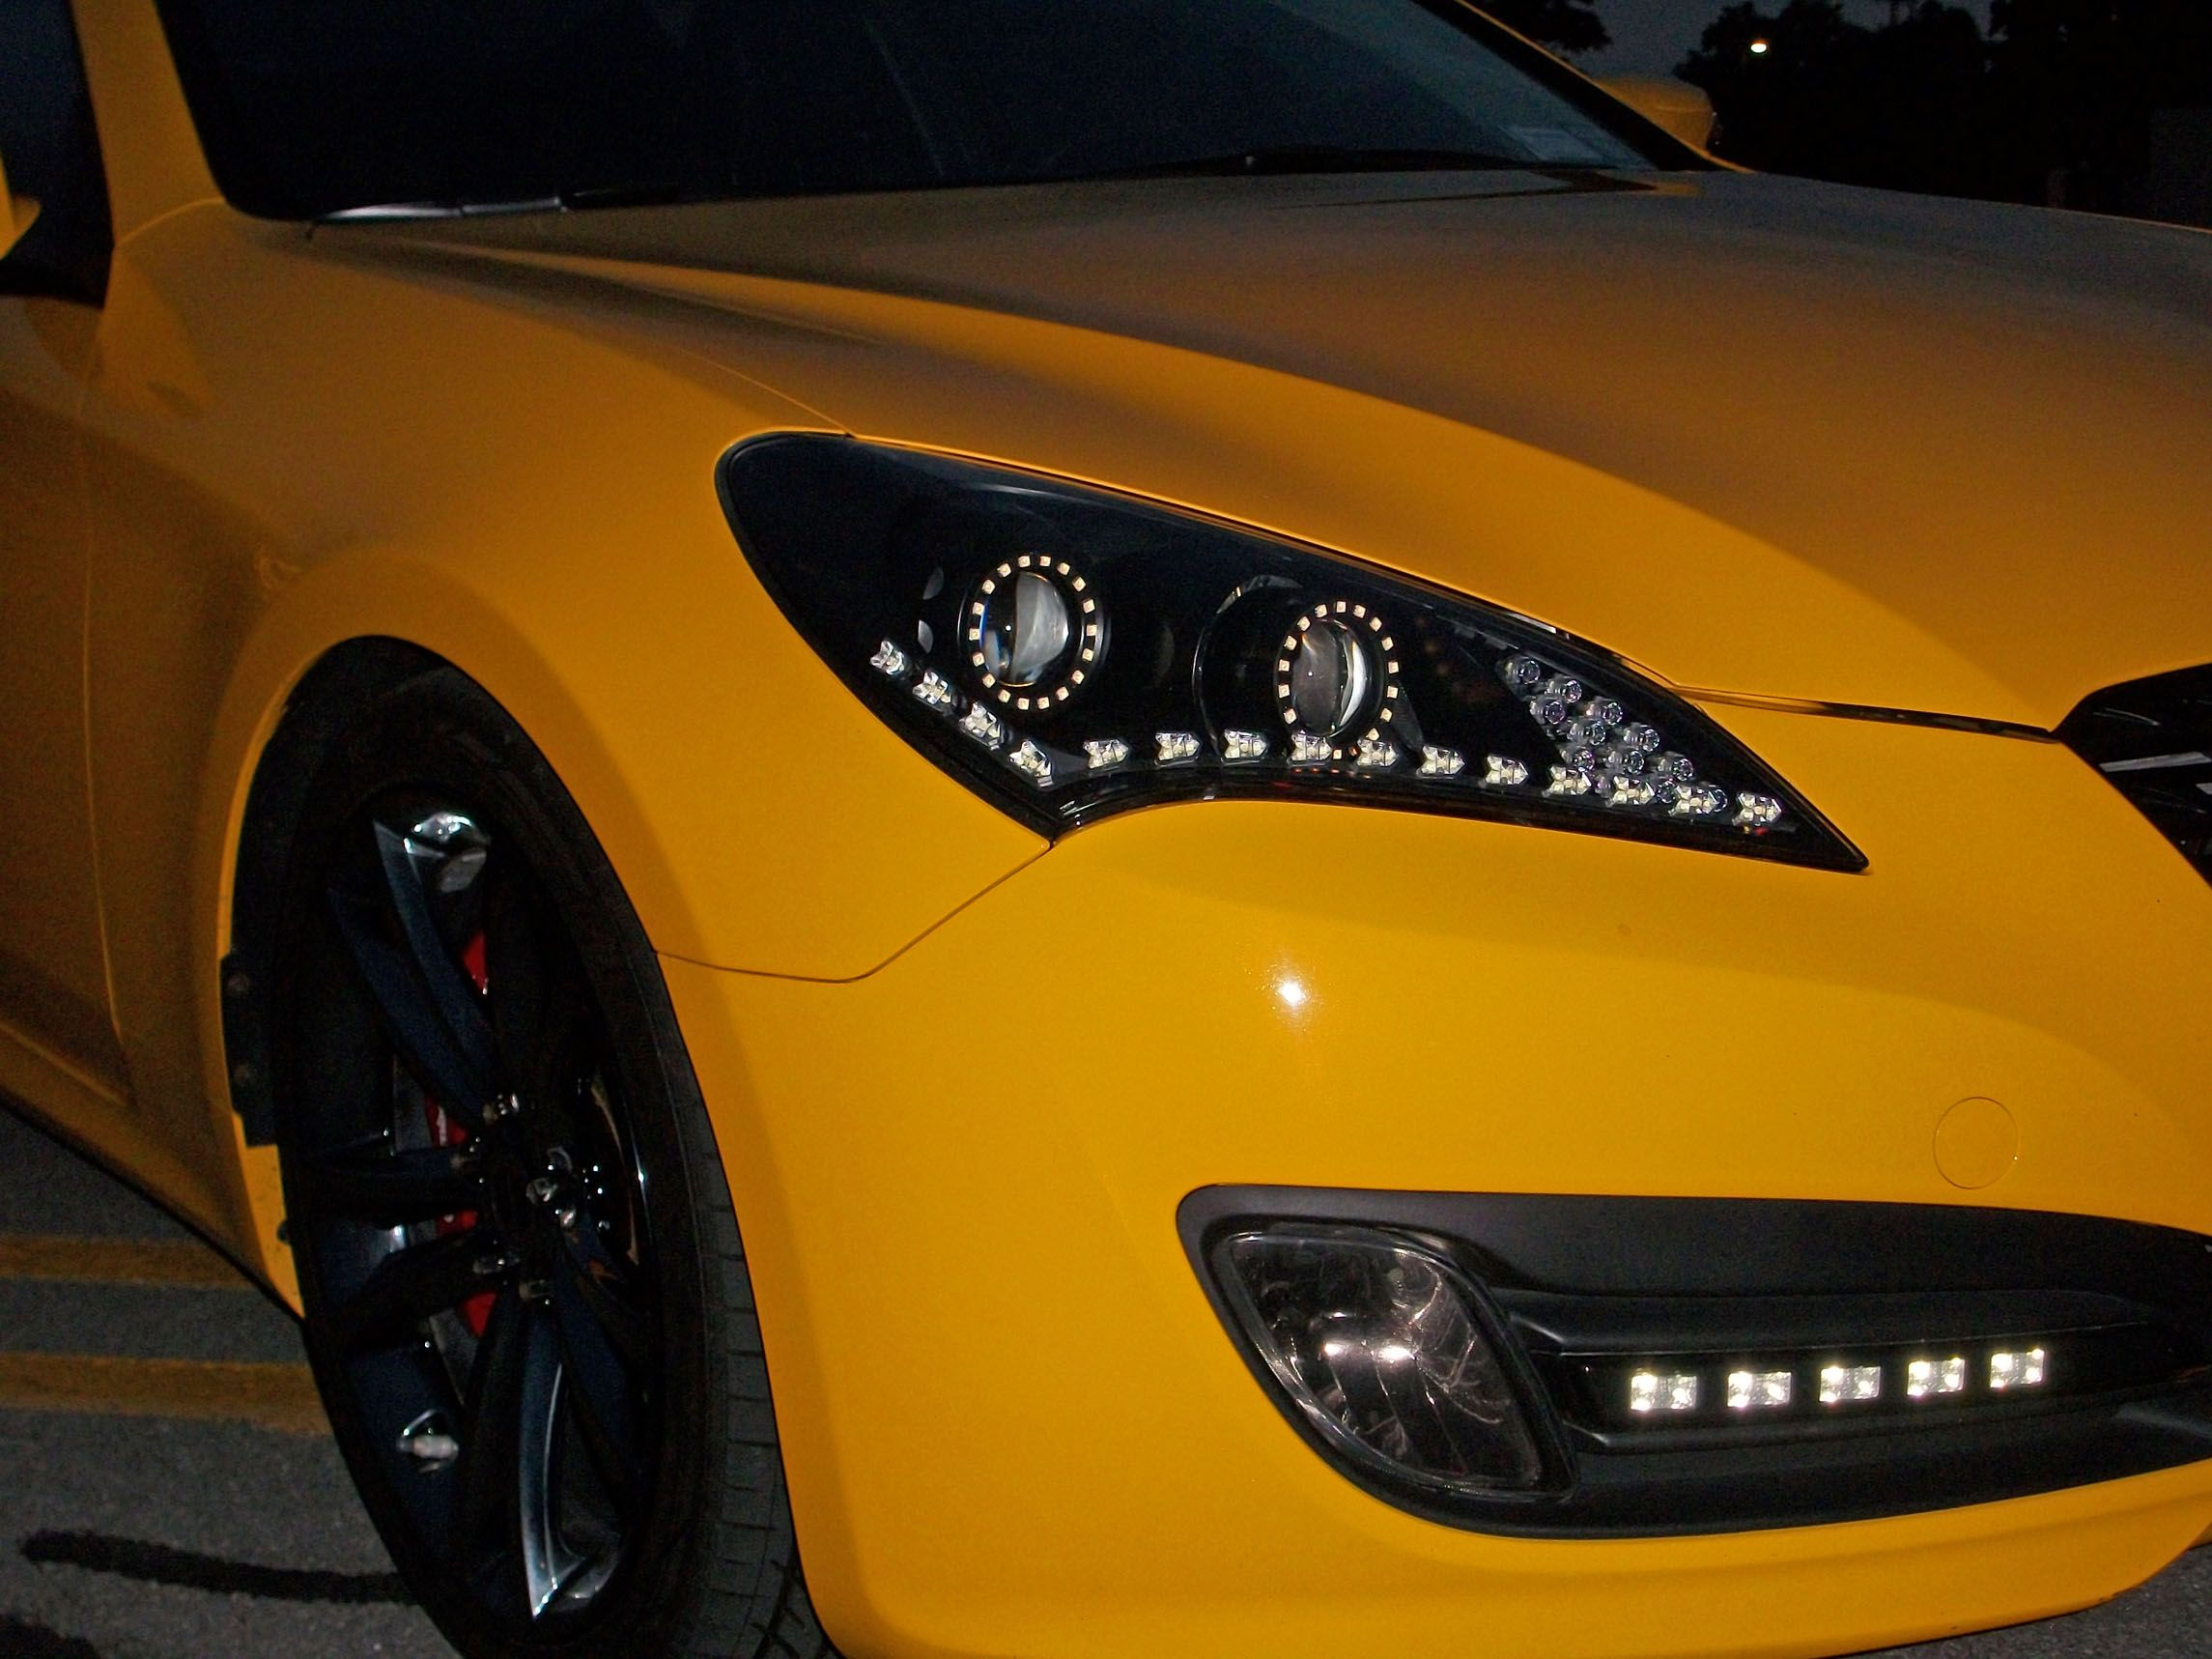 Dennis genesis coupe dual projector led headlights by flyryde